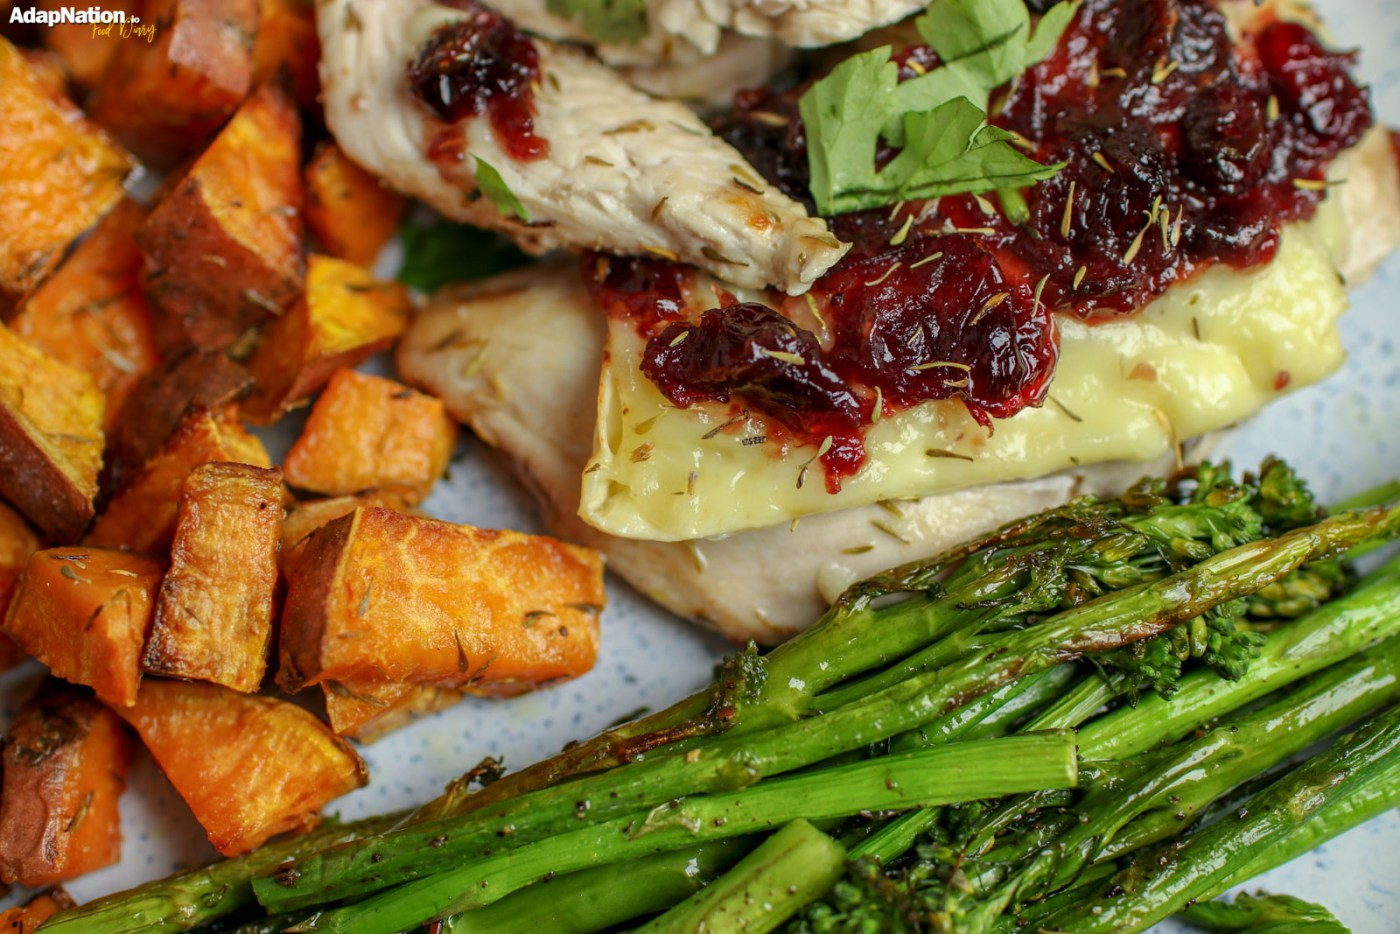 Brie & Cranberry Chicken with Sweet Potato Roasties & Toasted Green Veg